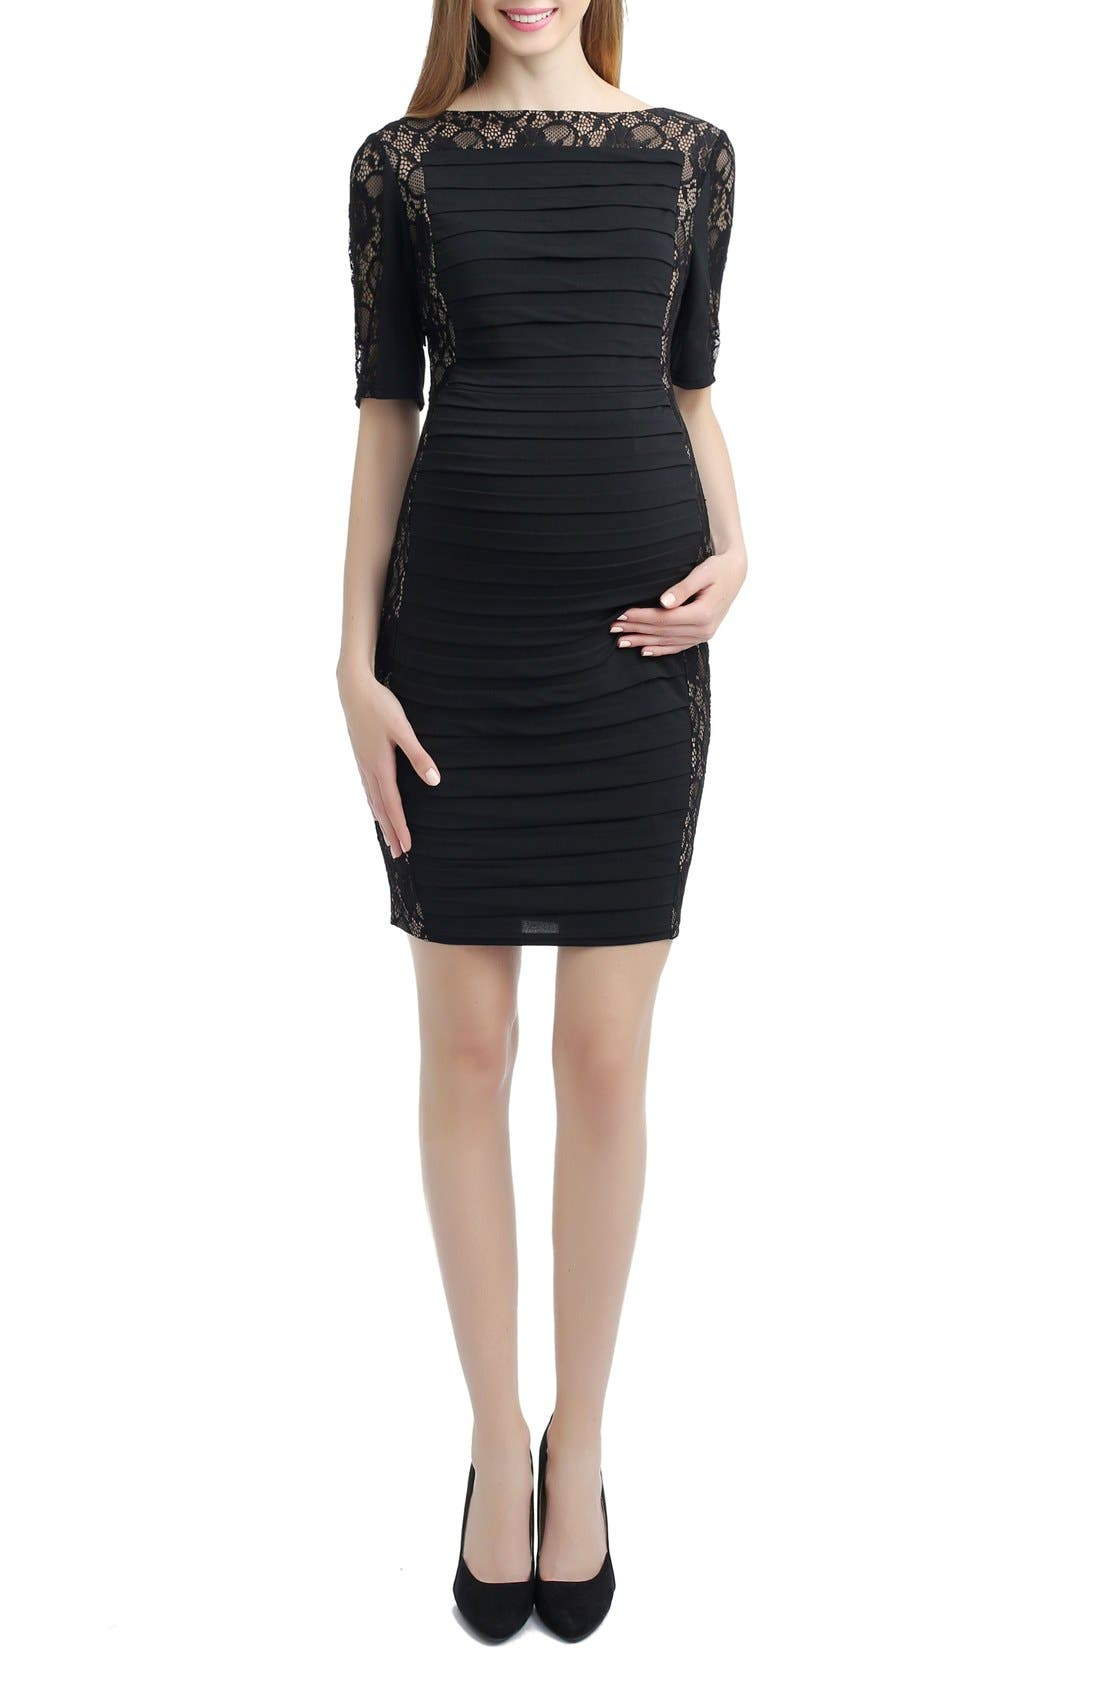 KIMI AND KAI Estelle Lace Maternity Dress